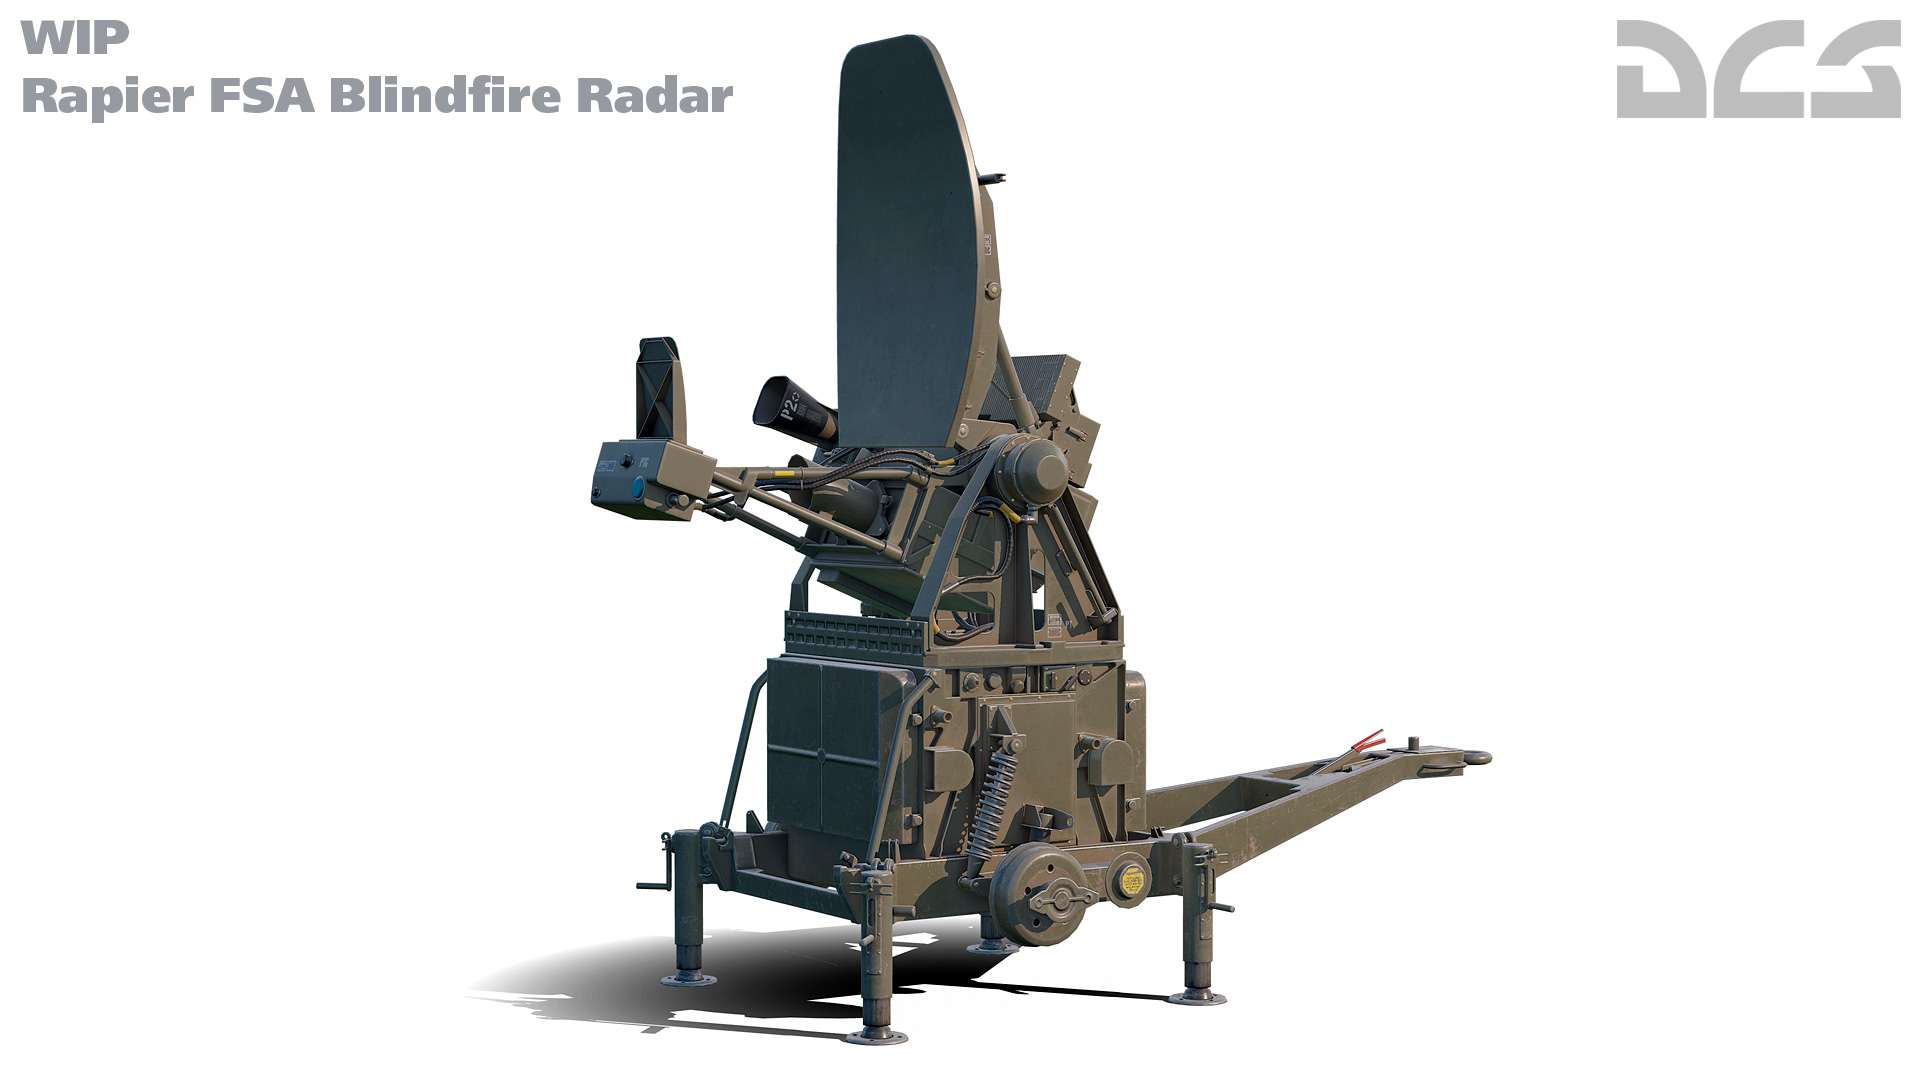 IMAGE(https://www.digitalcombatsimulator.com/upload/iblock/957/rapier_fsa_blindfire_radar_2.jpg?bx_sender_conversion_id=608033)